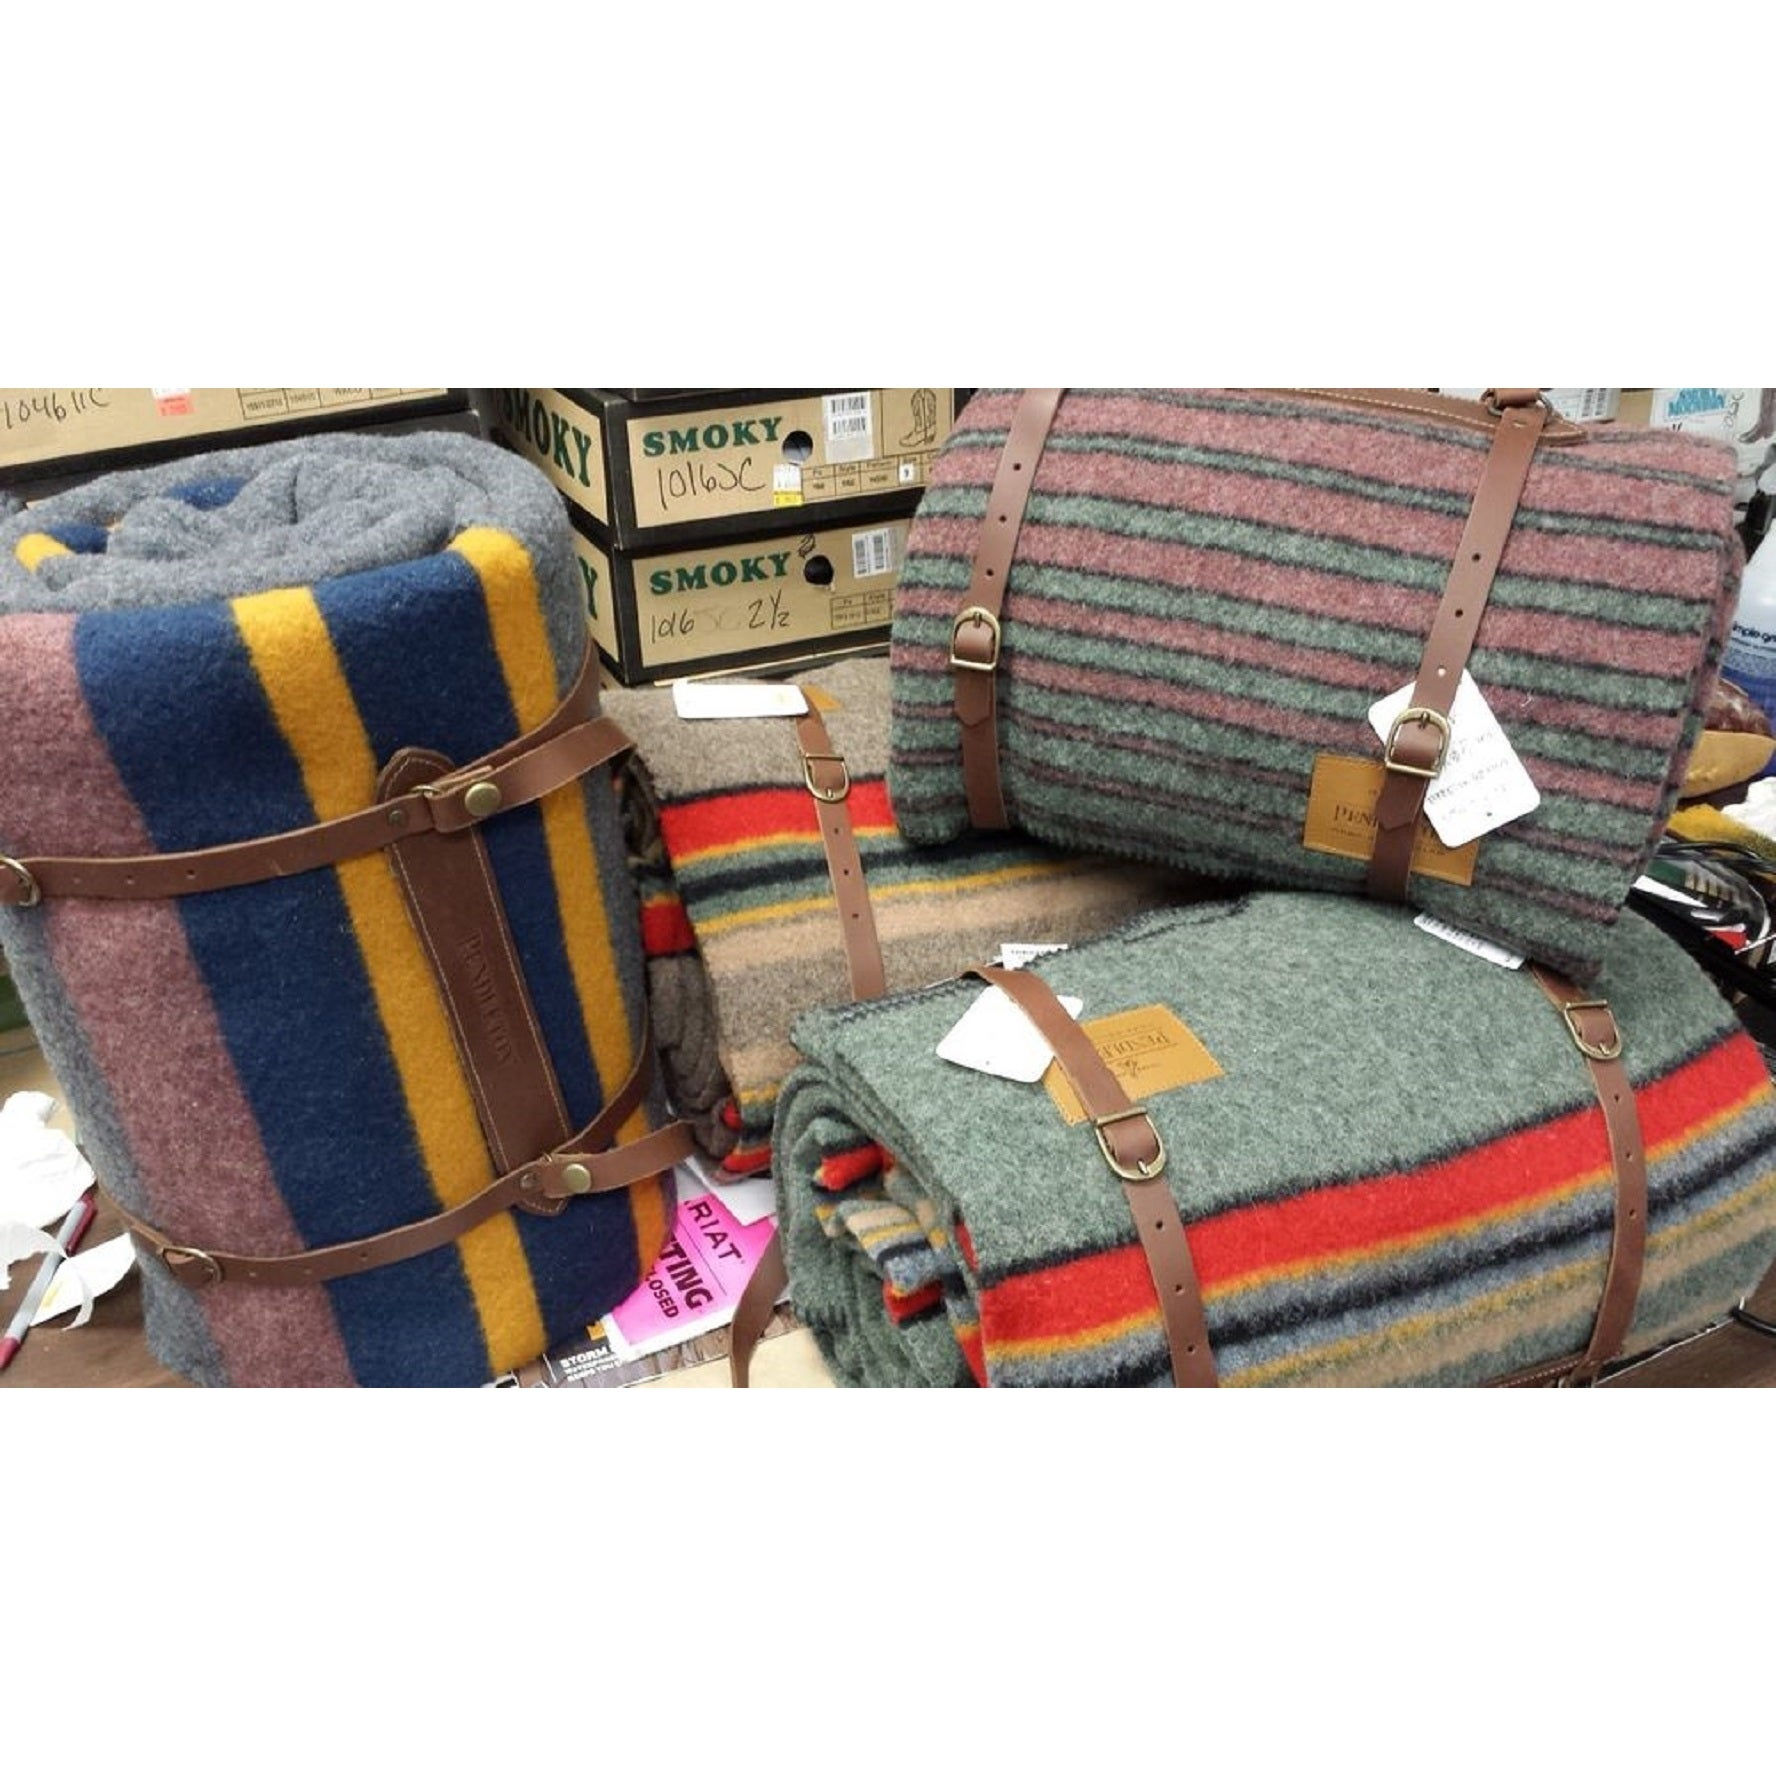 Charmant Shop Pendleton Yakima Camp Lake Wool Twin Blanket With Leather Carrier    Free Shipping Today   Overstock.com   11869491